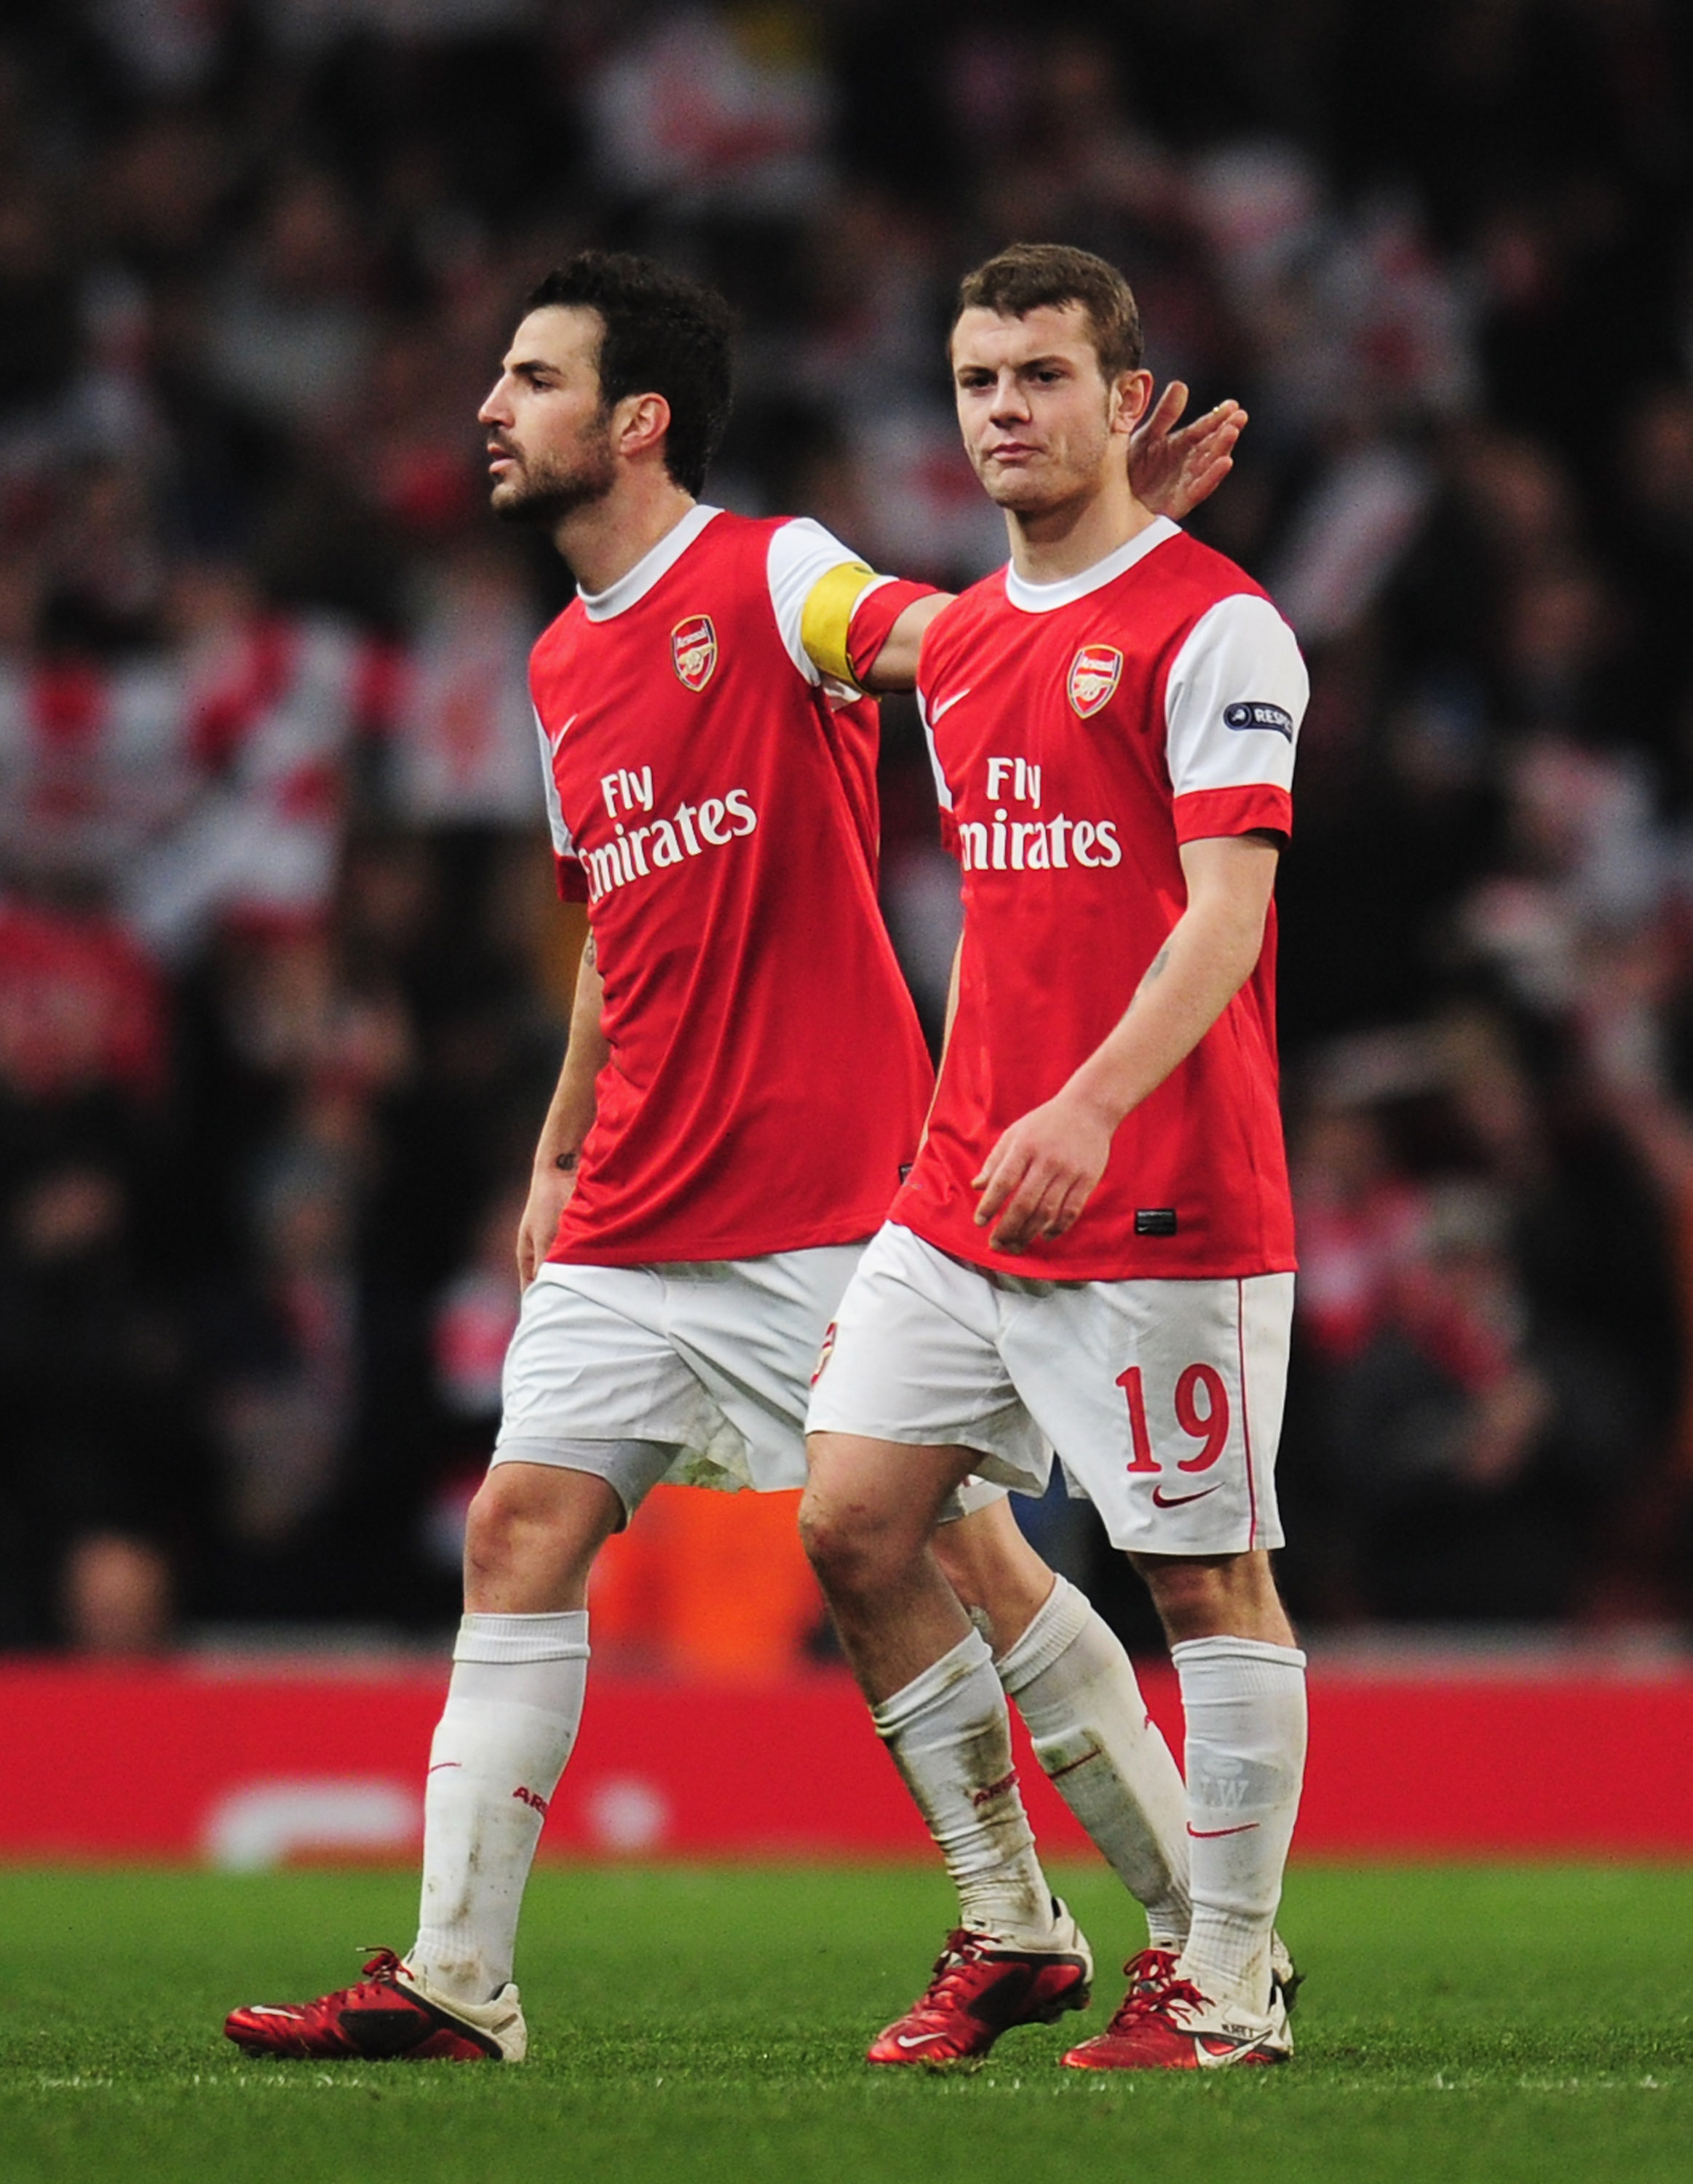 LONDON, ENGLAND - FEBRUARY 16:  Cesc Fabregas (L) of Arsenal congratulates Jack Wilshere after the UEFA Champions League round of 16 first leg match between Arsenal and Barcelona at the Emirates Stadium on February 16, 2011 in London, England.  (Photo by